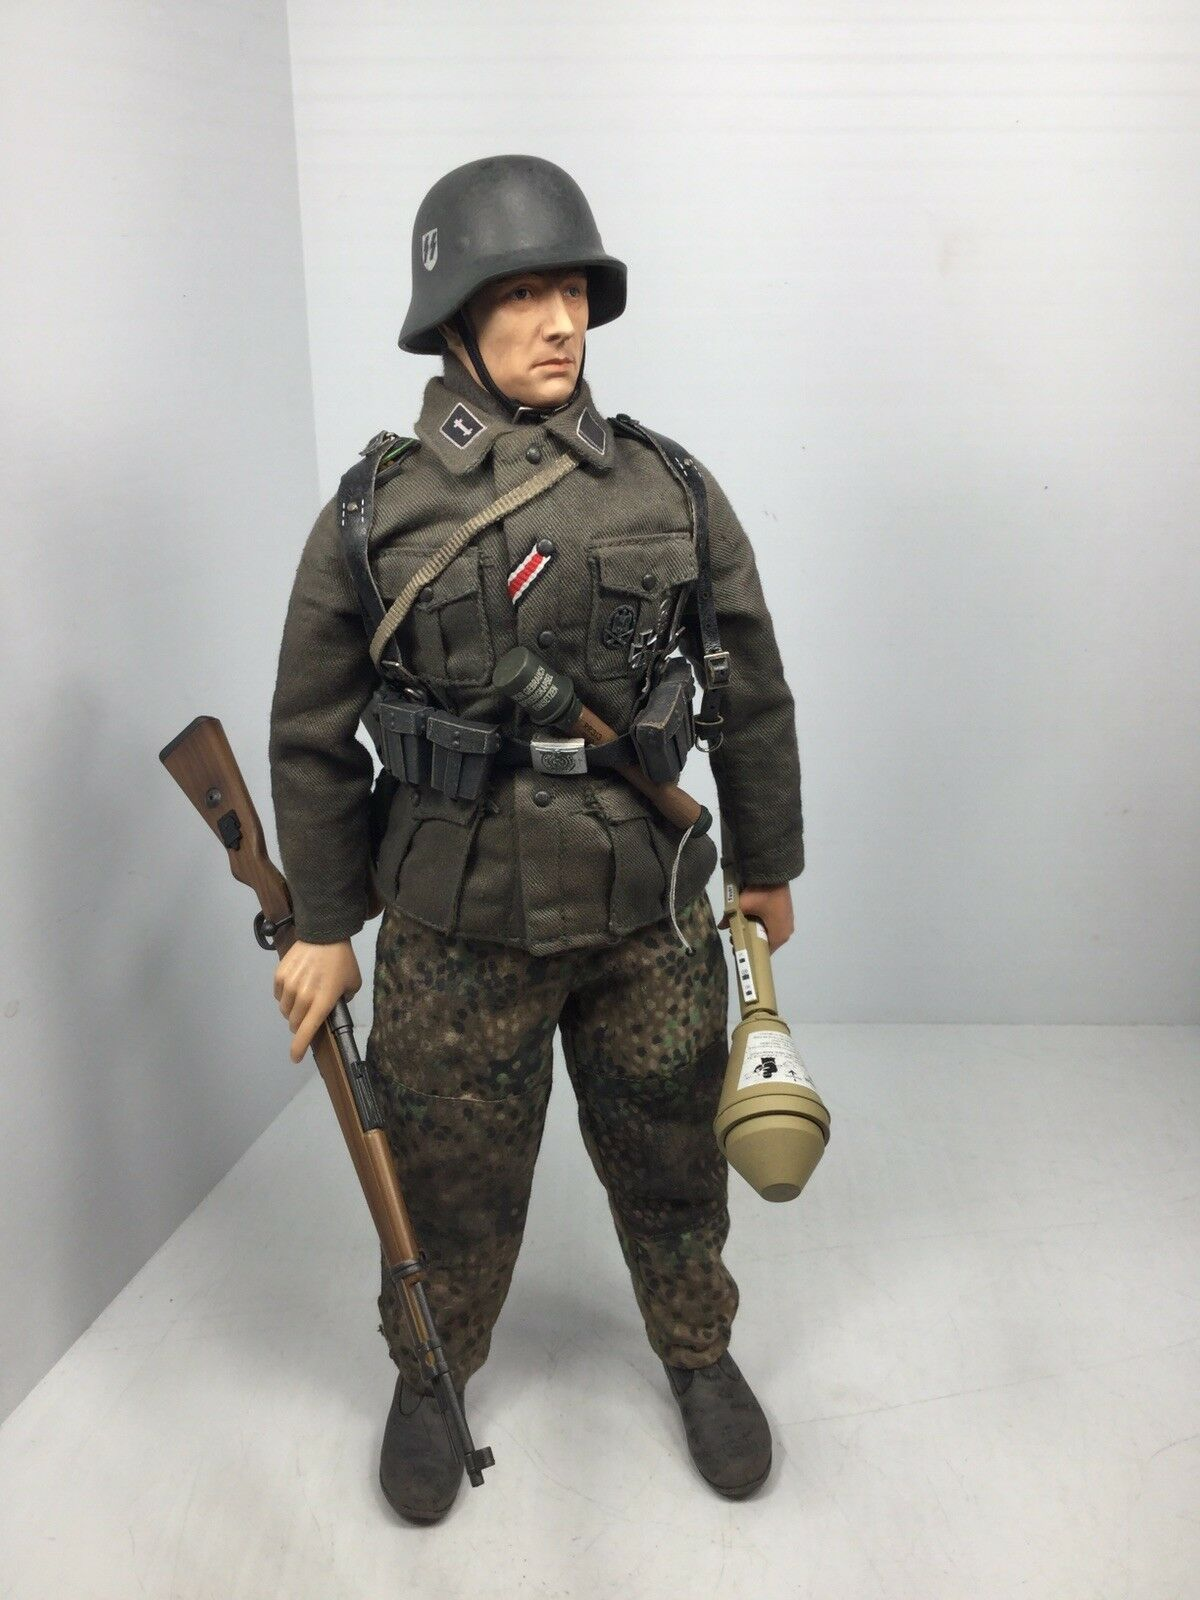 1 6 DRAGON GERMAN 30TH SS DIV GRENADIER K-98 PANZERFAUST E.FRONT BBI DID 21 WW2